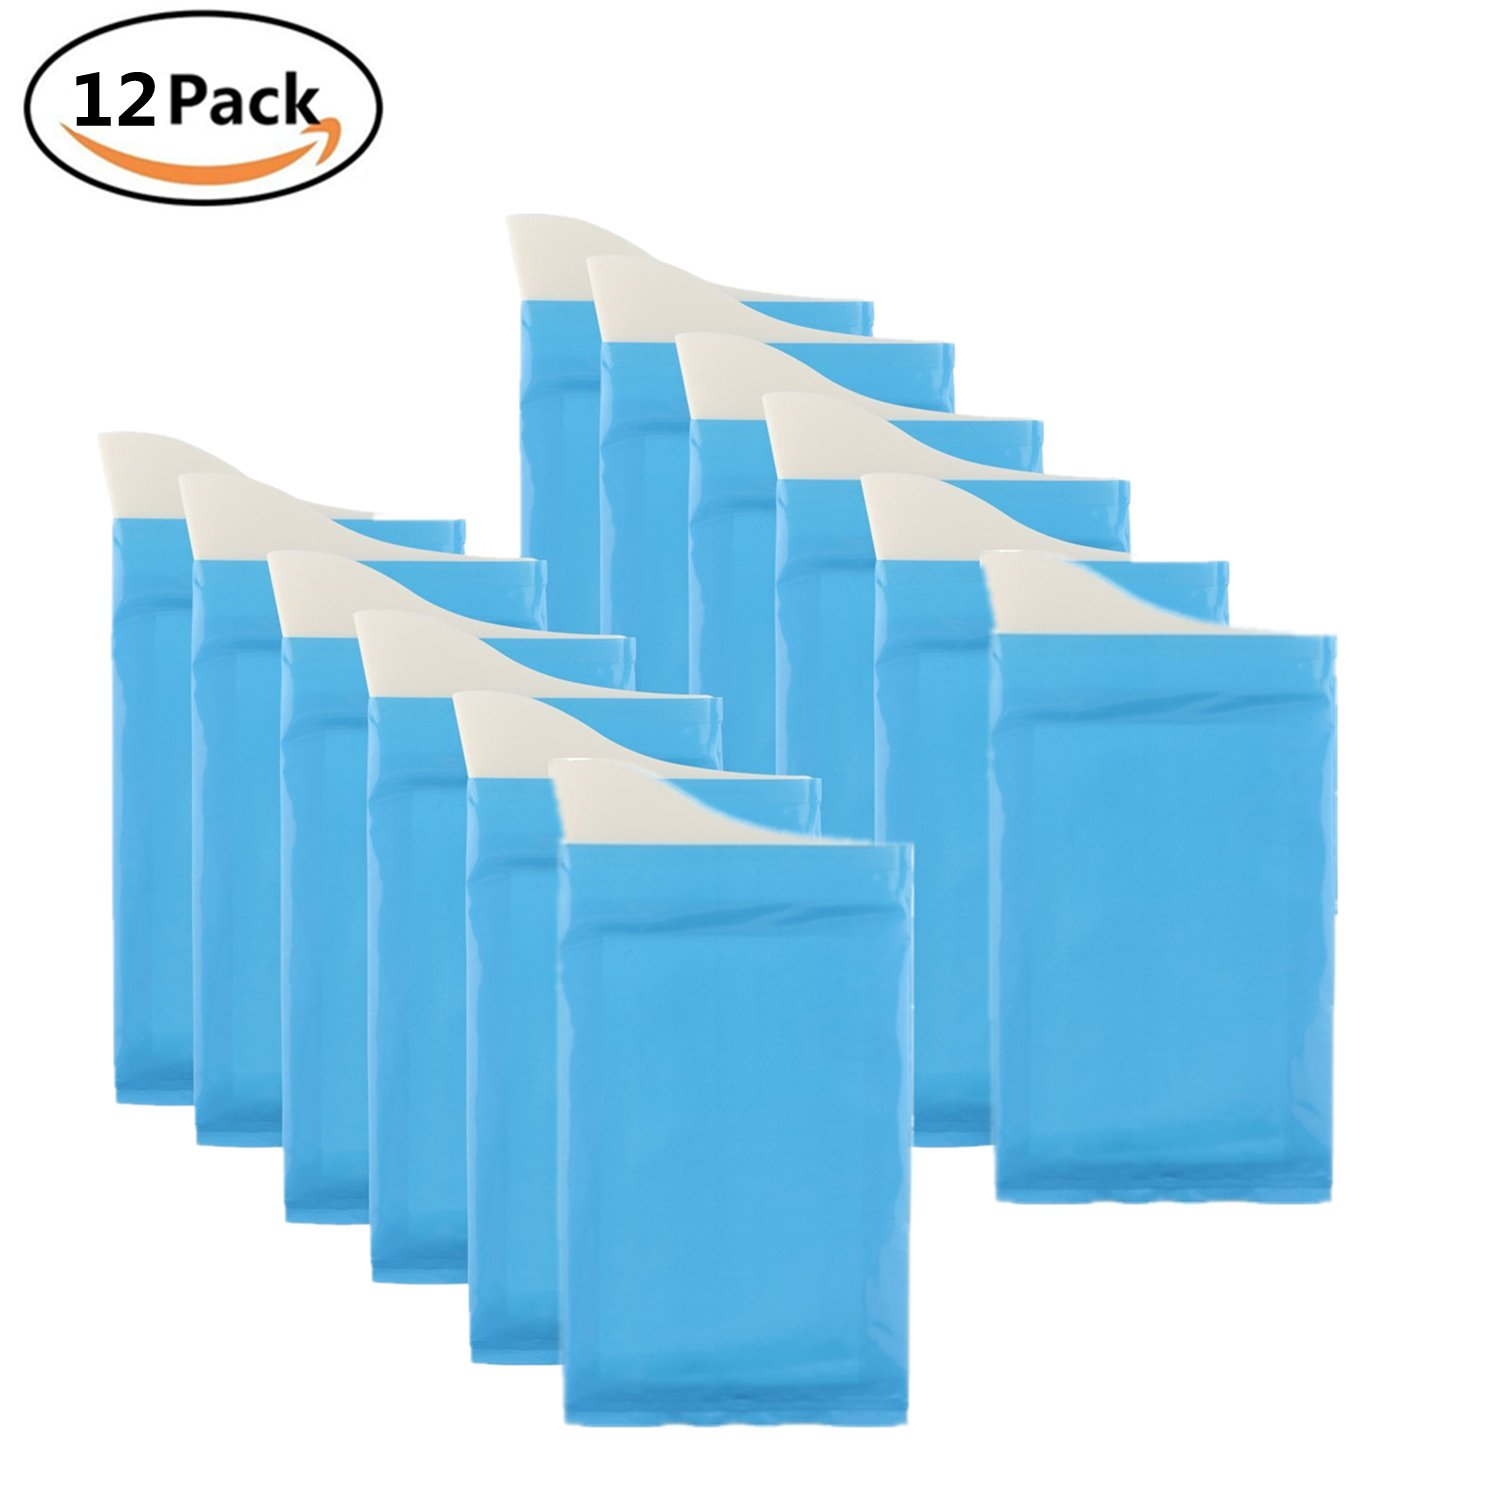 Unisex Men Women Children Brief Relief Disposable Urinal Bags Super Absorbent Packs for Travel Car Traffic Jam Camping 12 Pieces FZAY